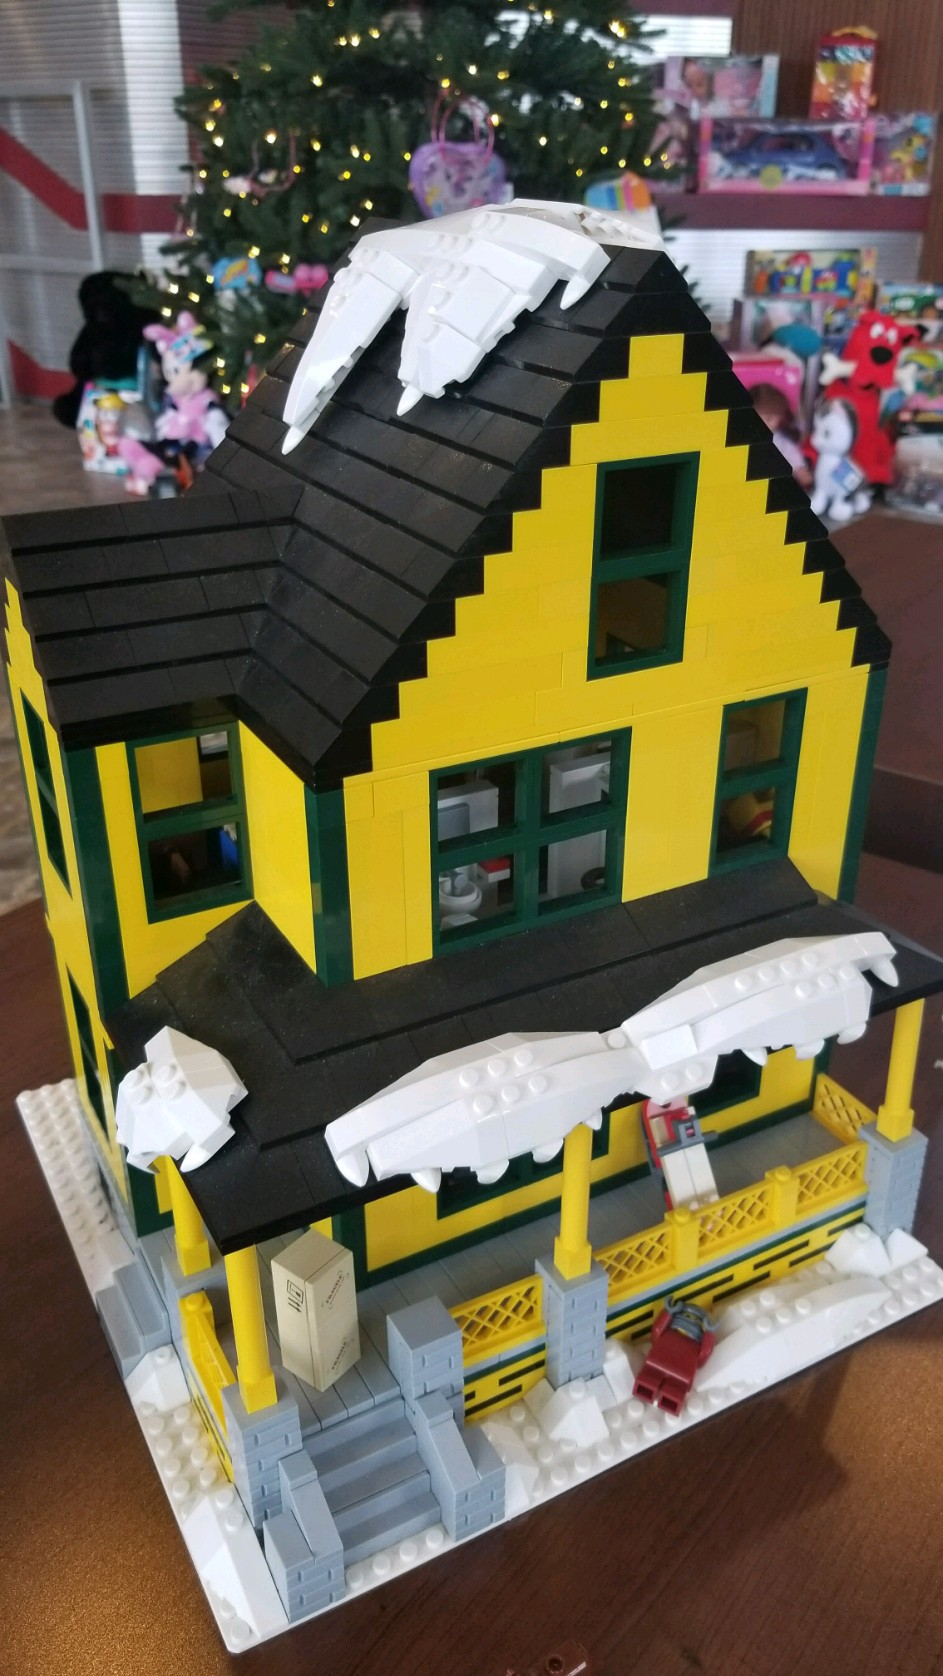 Jason Middaugh says what started as a family project, sparked by his daughter's love of the building blocks, turned into a crazy journey to recreate the house from the popular holiday film.